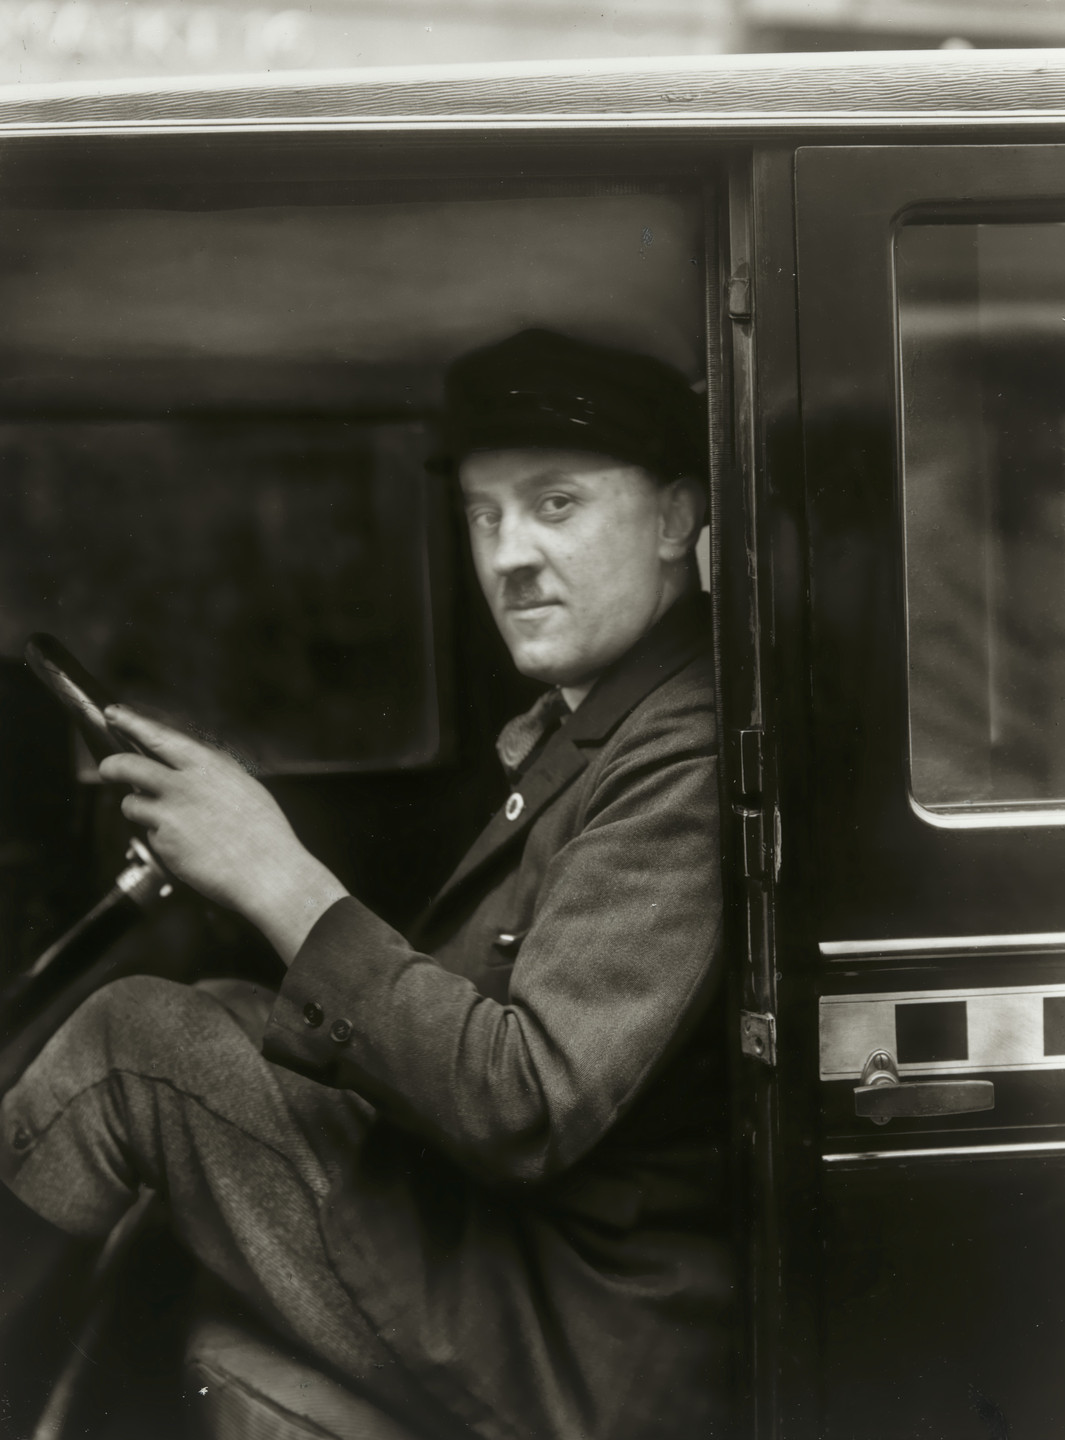 August Sander. The Chauffeur. 1929